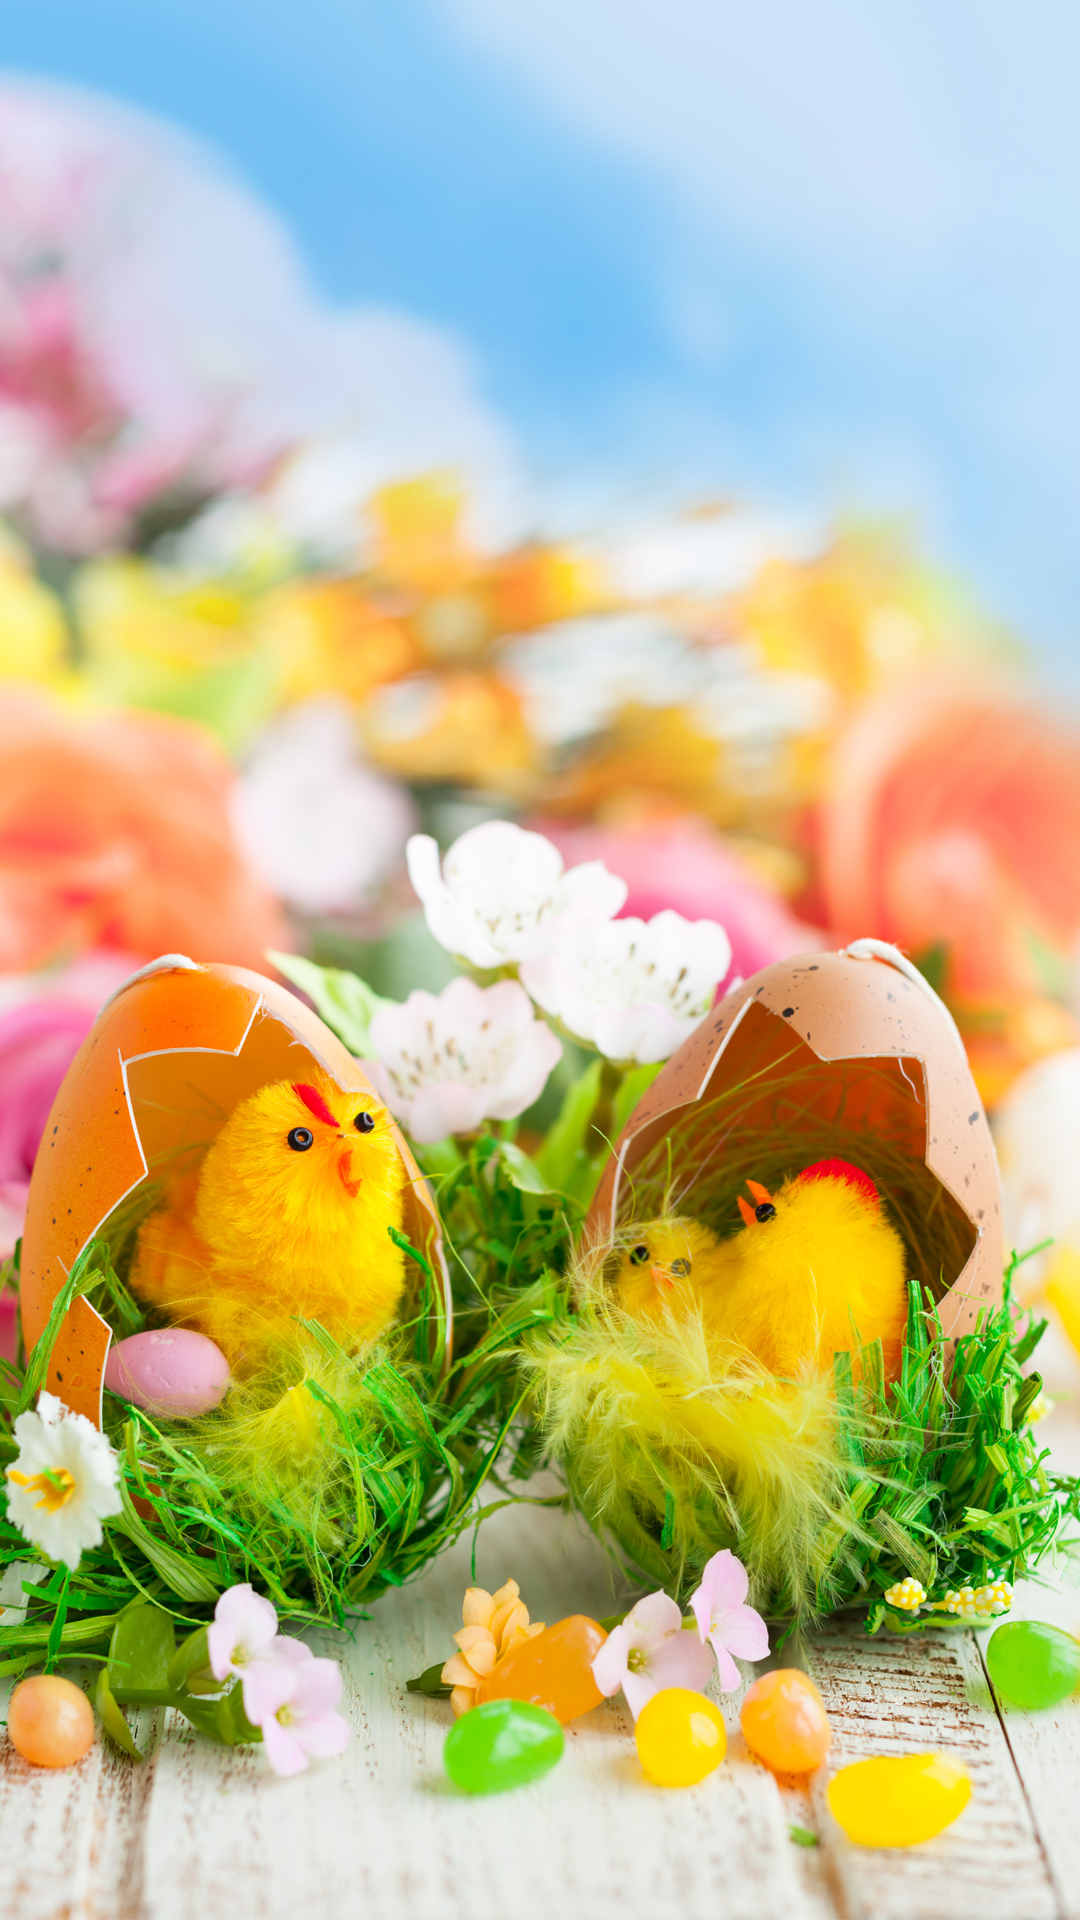 iPhone 6S Plus Easter Wallpaper | Gallery Yopriceville - High-Quality Images and Transparent PNG ...